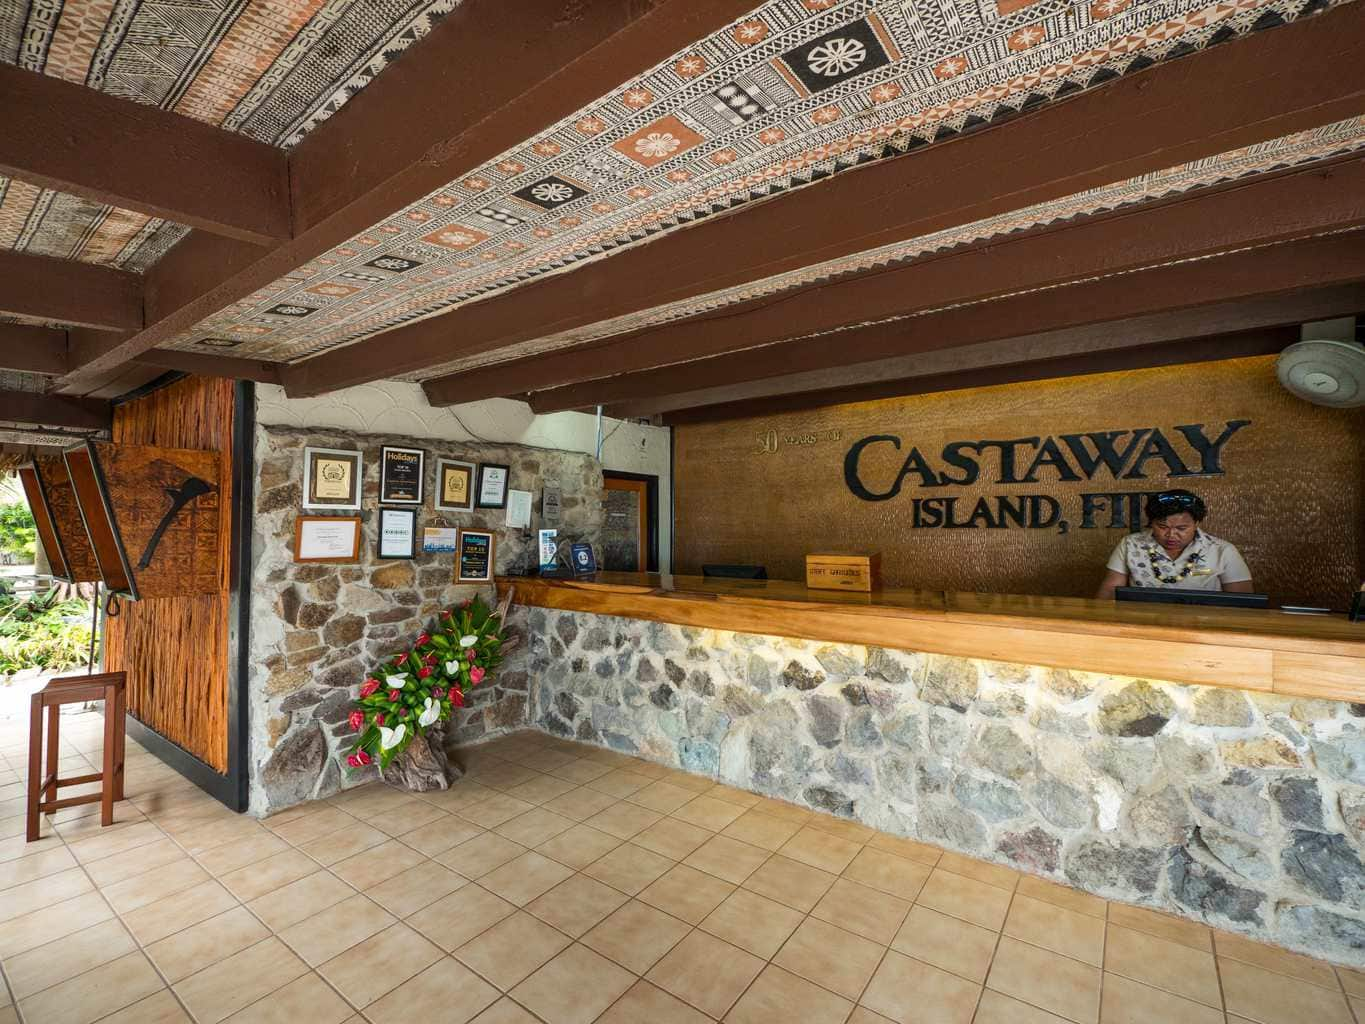 Reception area at the Castaway Island Resort